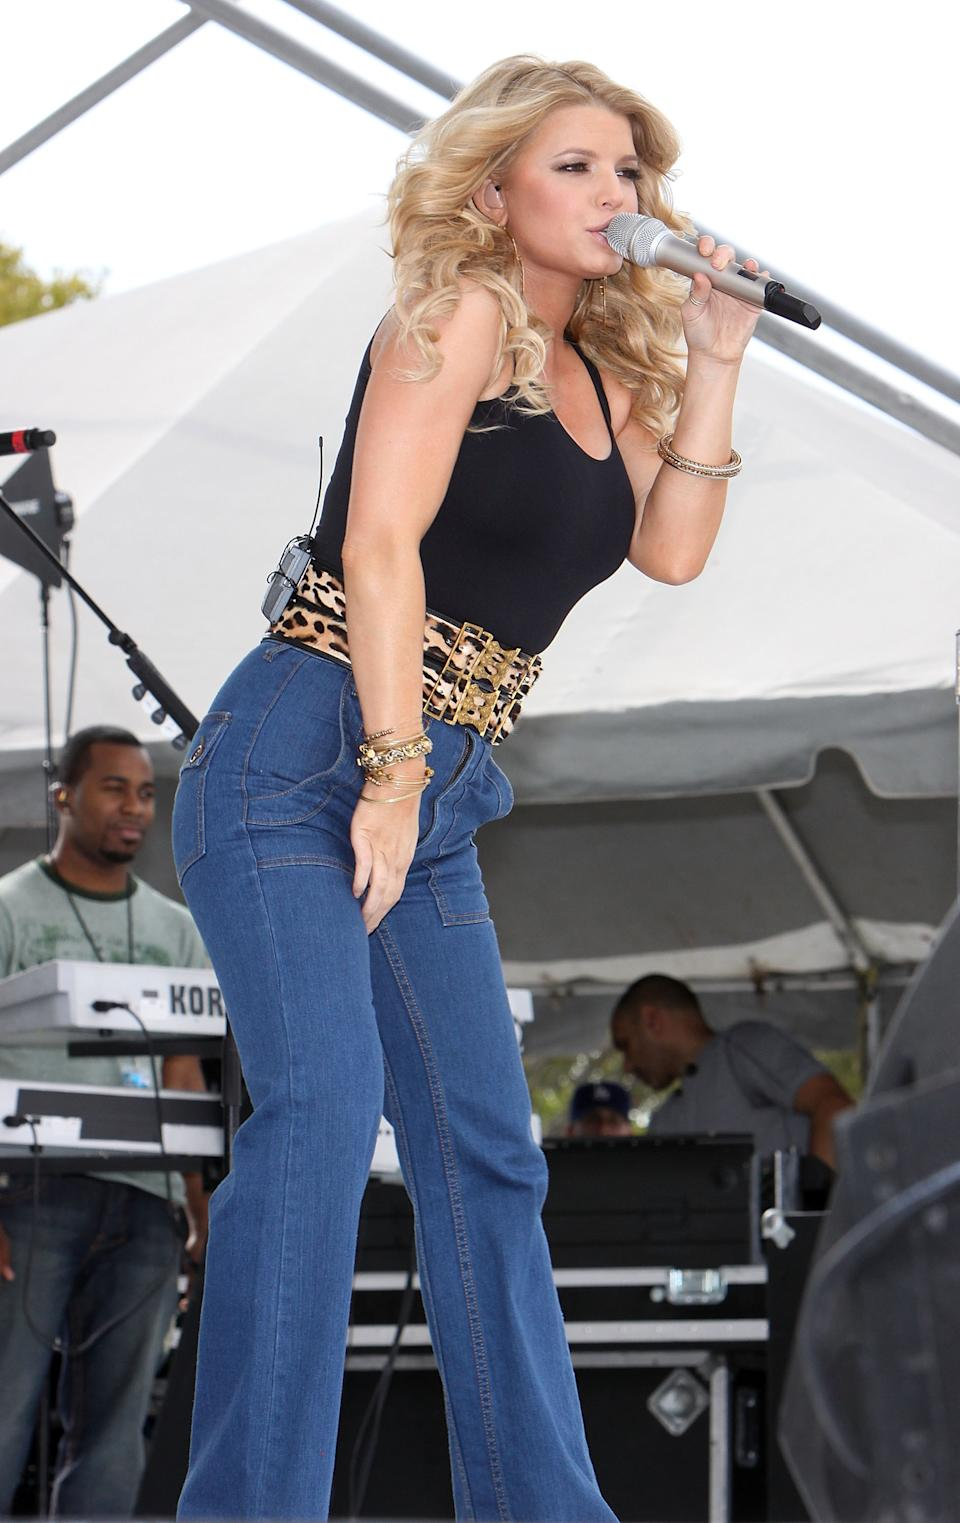 PEMBROKE PINES, FL - JANUARY 25:  Singer Jessica Simpson performs at the 99.9 Kiss Country 24th Annual Chili Cook Off at CB Smith Park on January 25, 2009 in Pembroke Pines, Florida. (Photo by Logan Fazio/Getty Images)